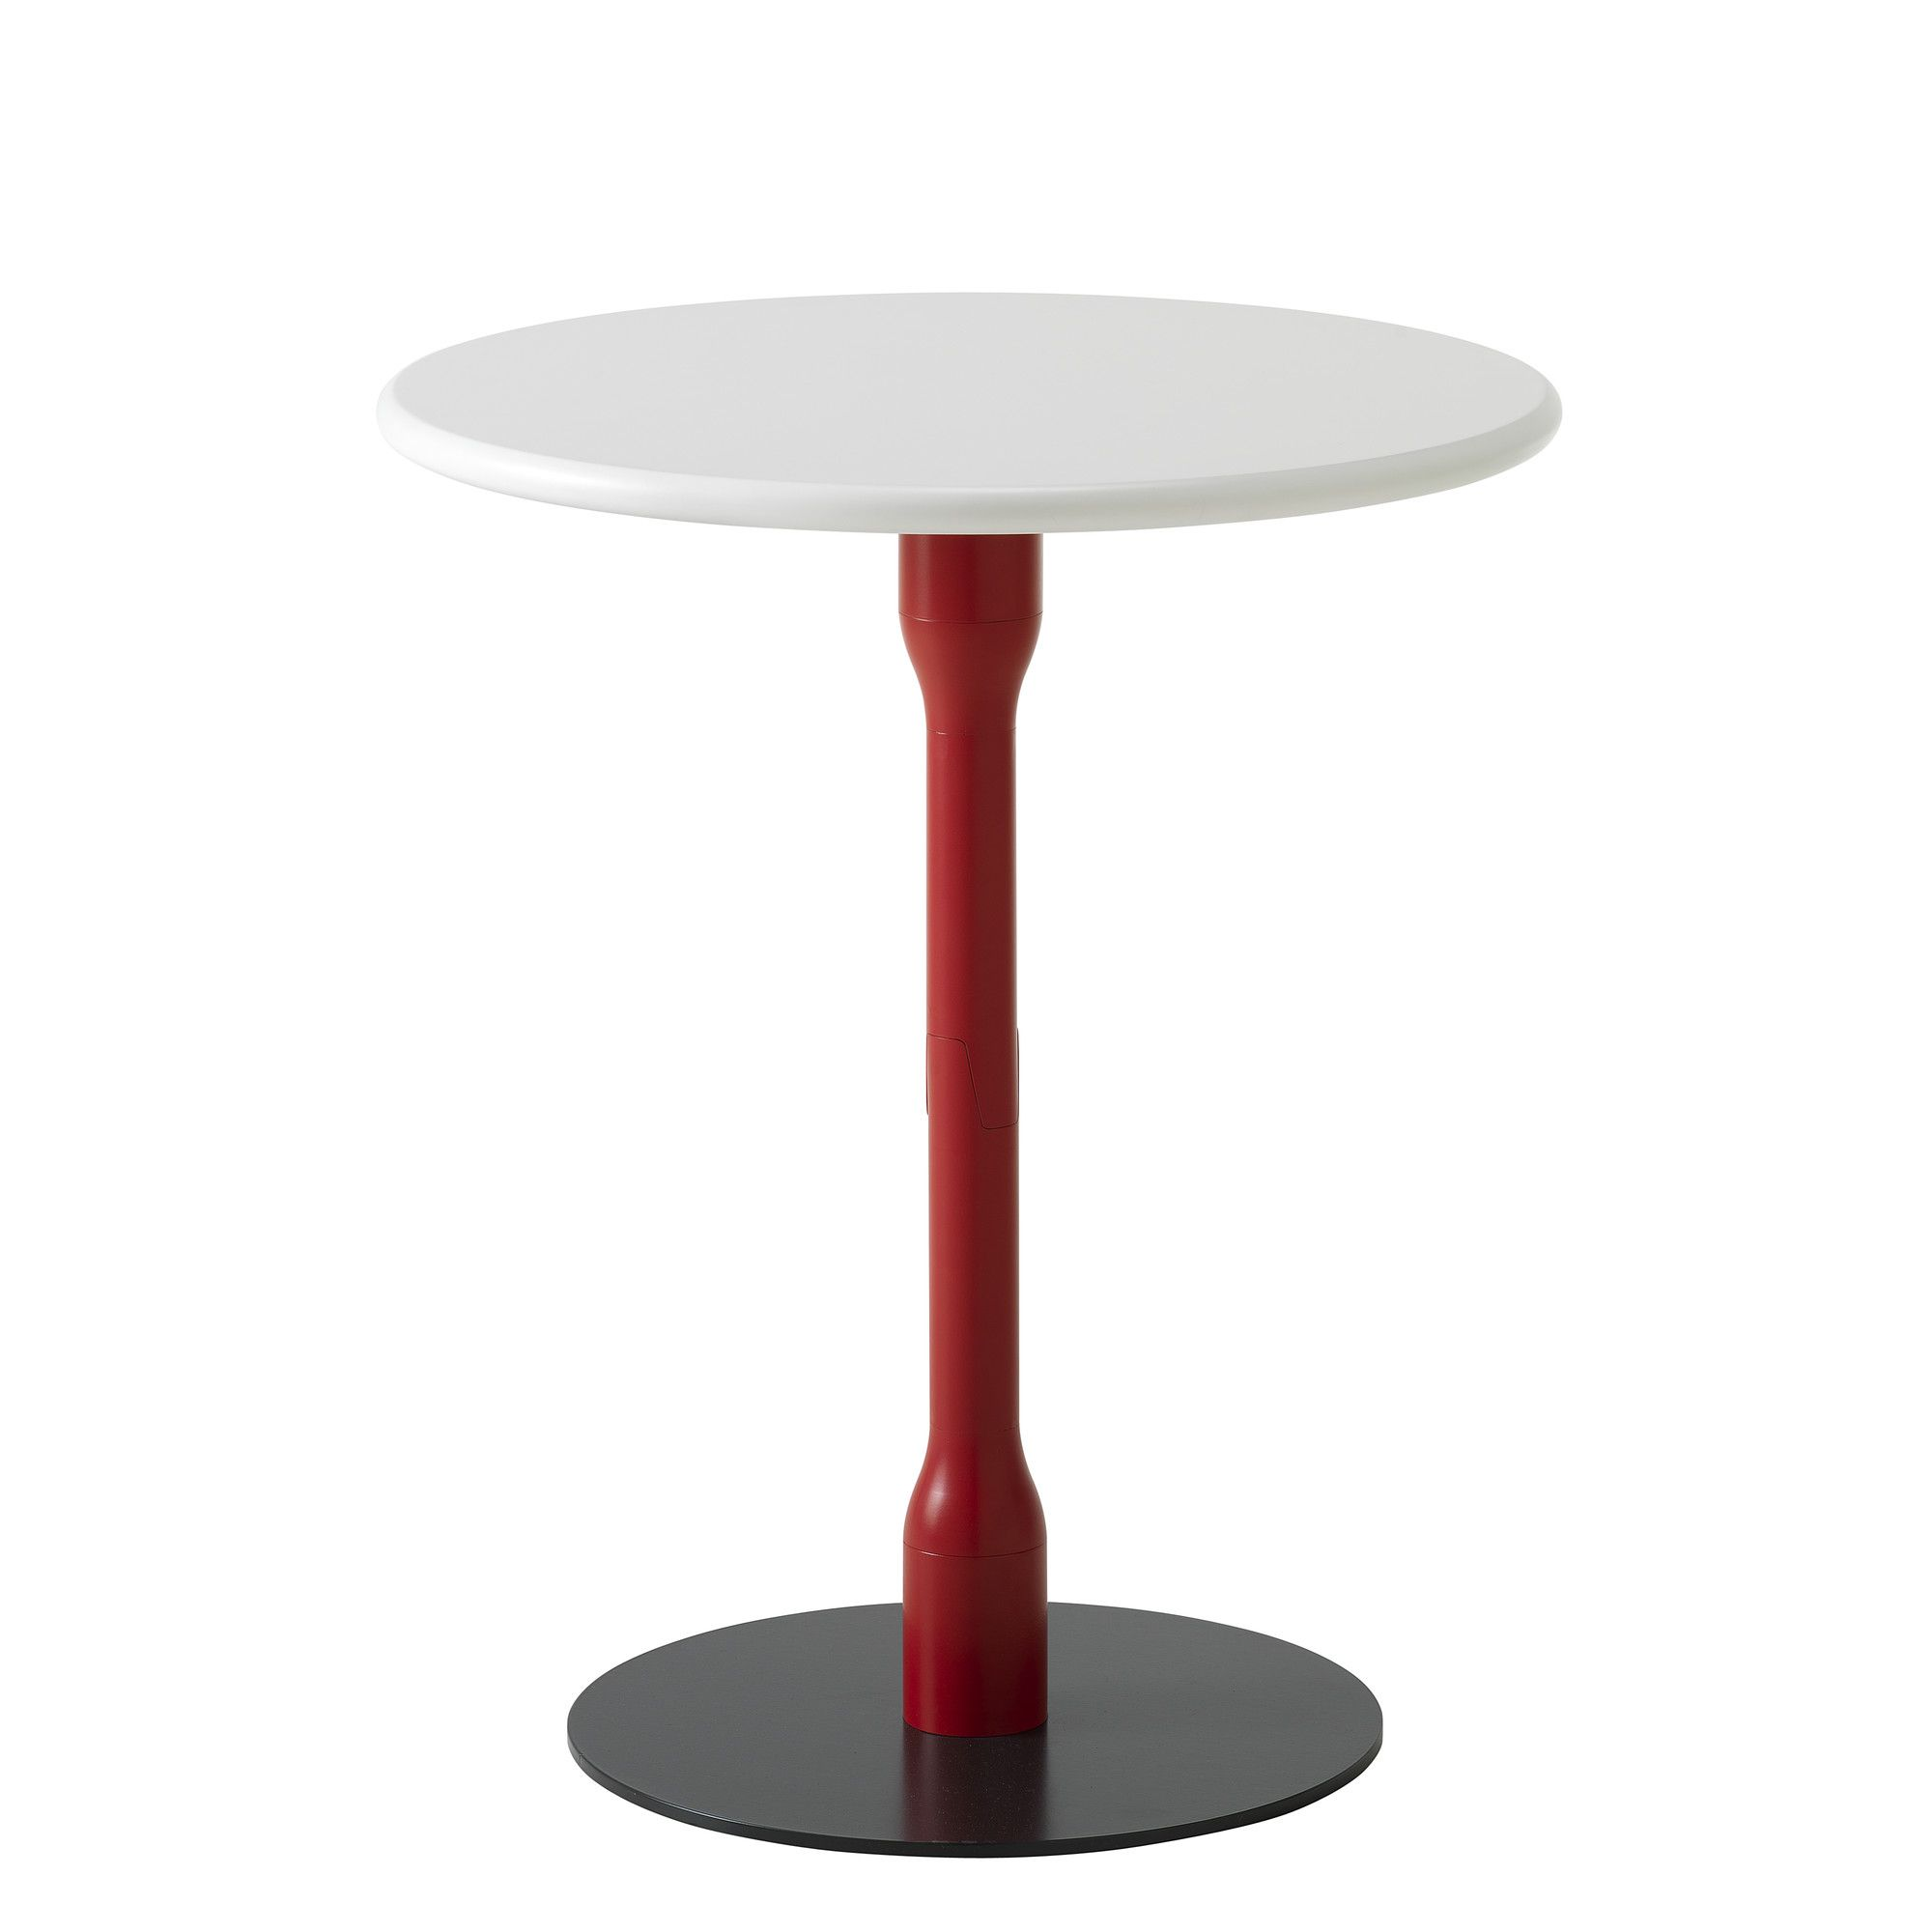 Casamania Bek Round Coffee Table - Painted Metal Red - White at Tesco Direct